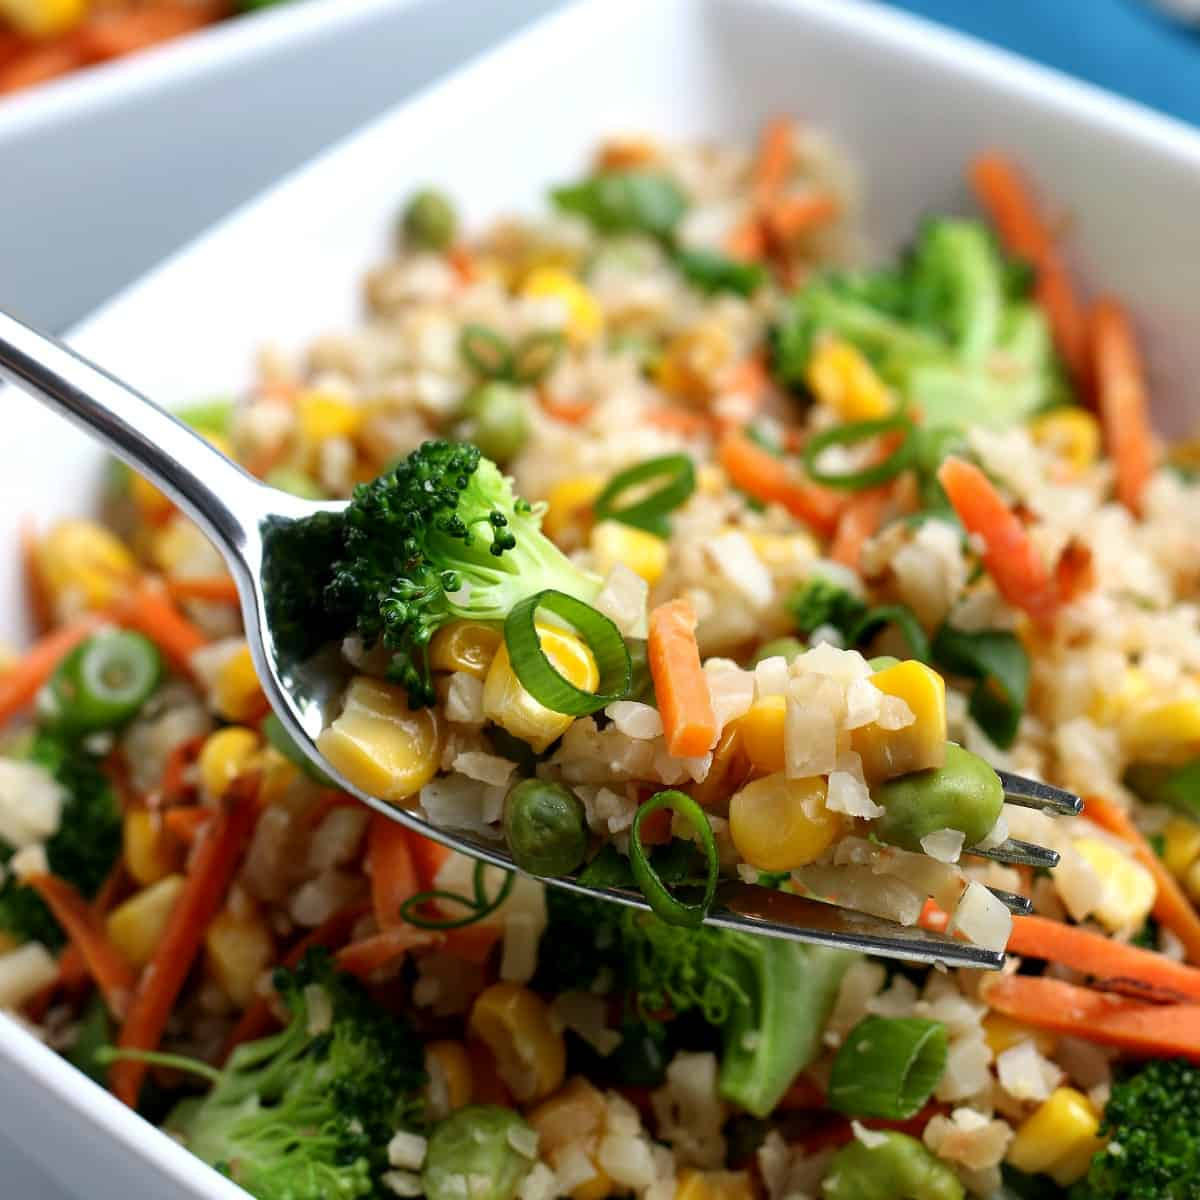 A fork full of mixed veggies is lifted up to the camera lens.